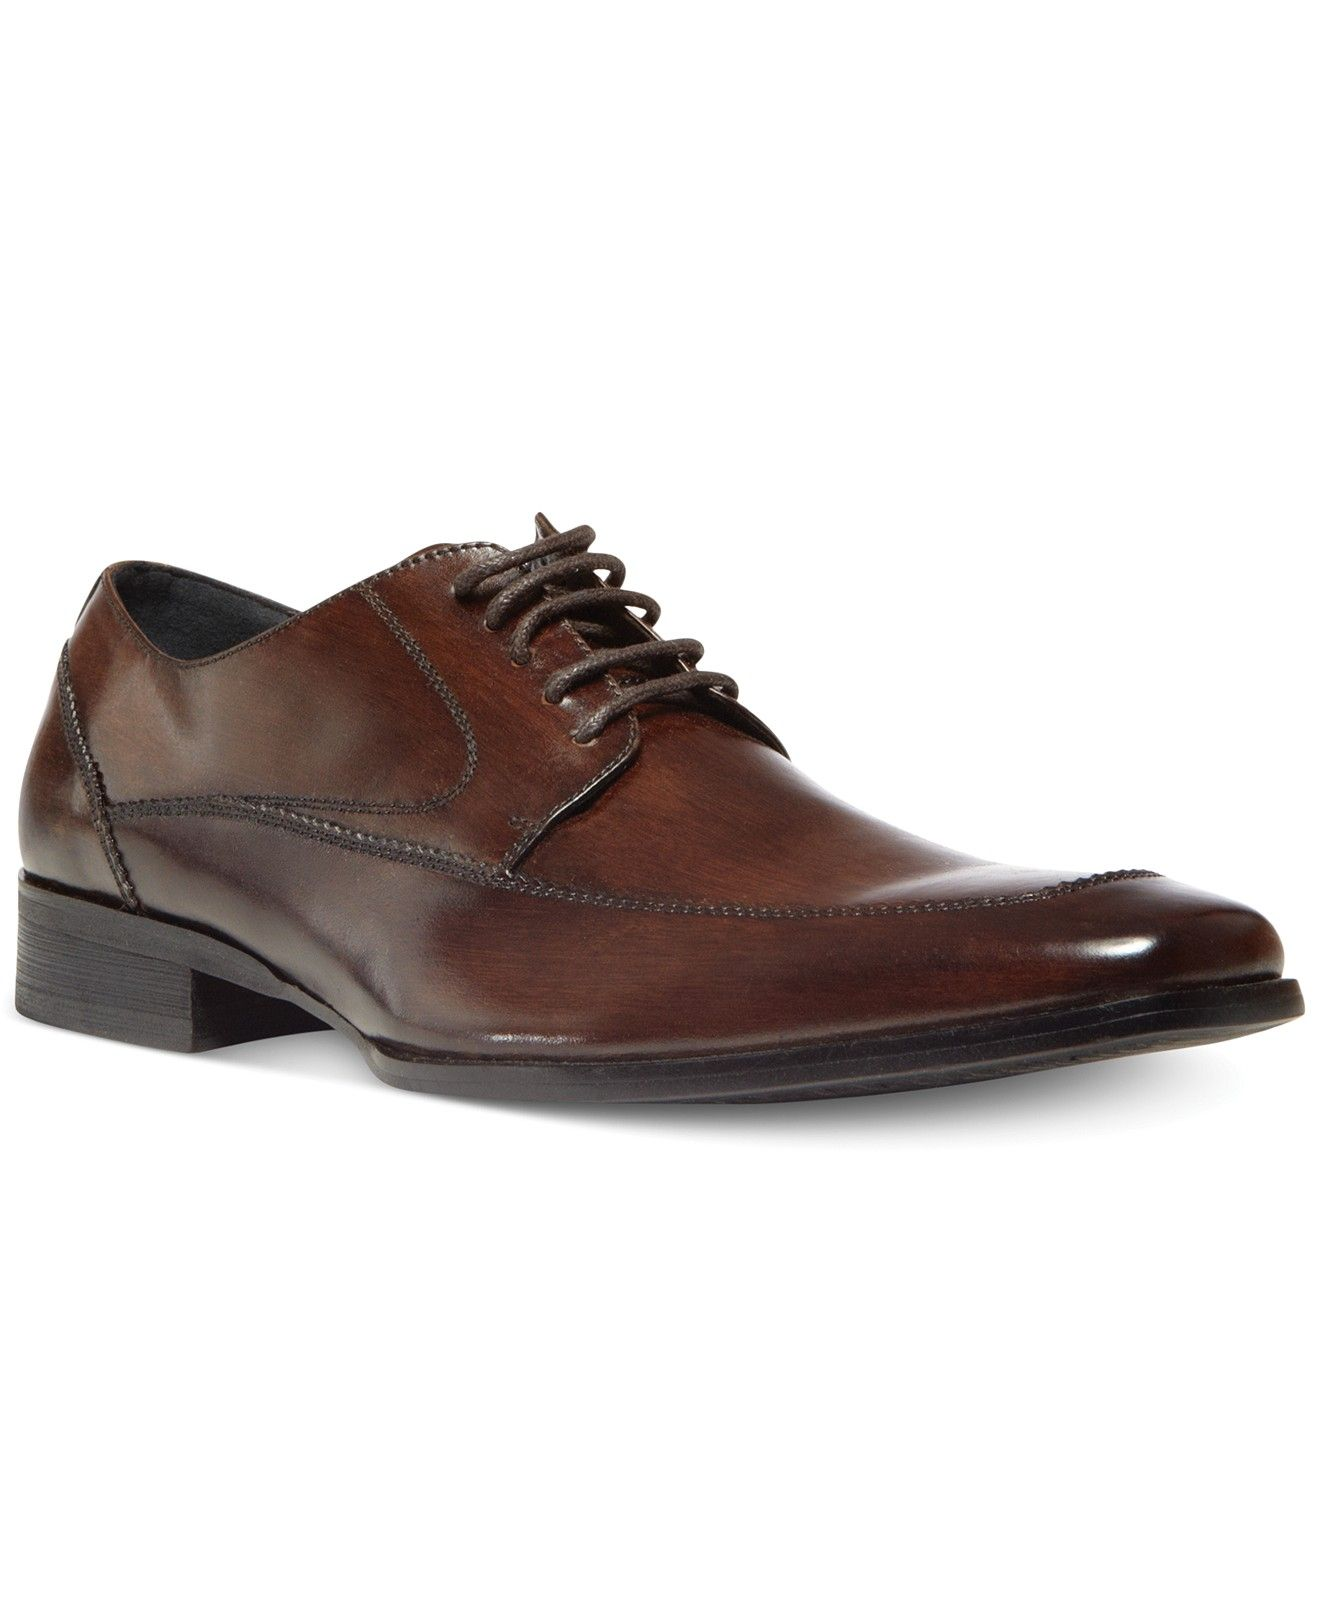 Steve Madden Sayge Lace-Up Dress Shoes - All Men's Shoes - Men - Macy's